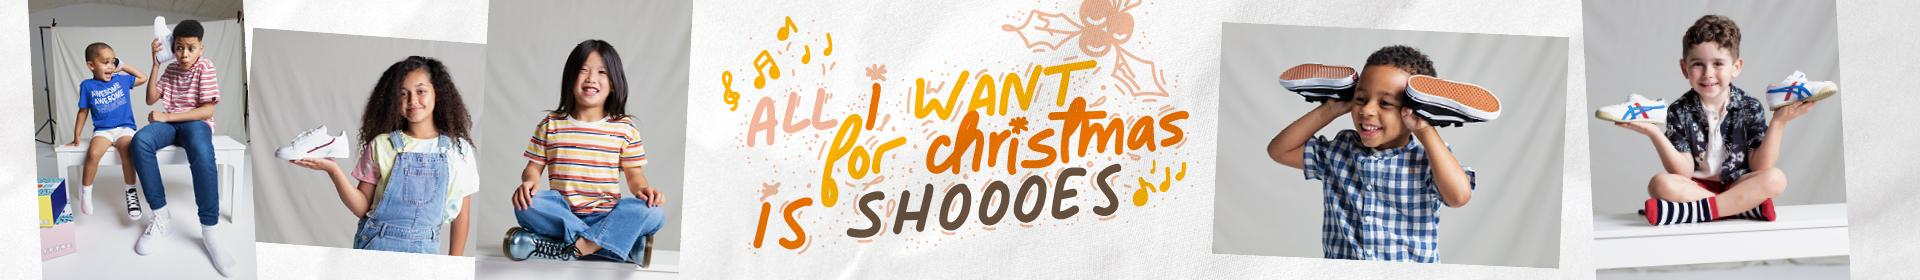 The Trybe Gift Guide | All I Want For Christmas Is Shooooes